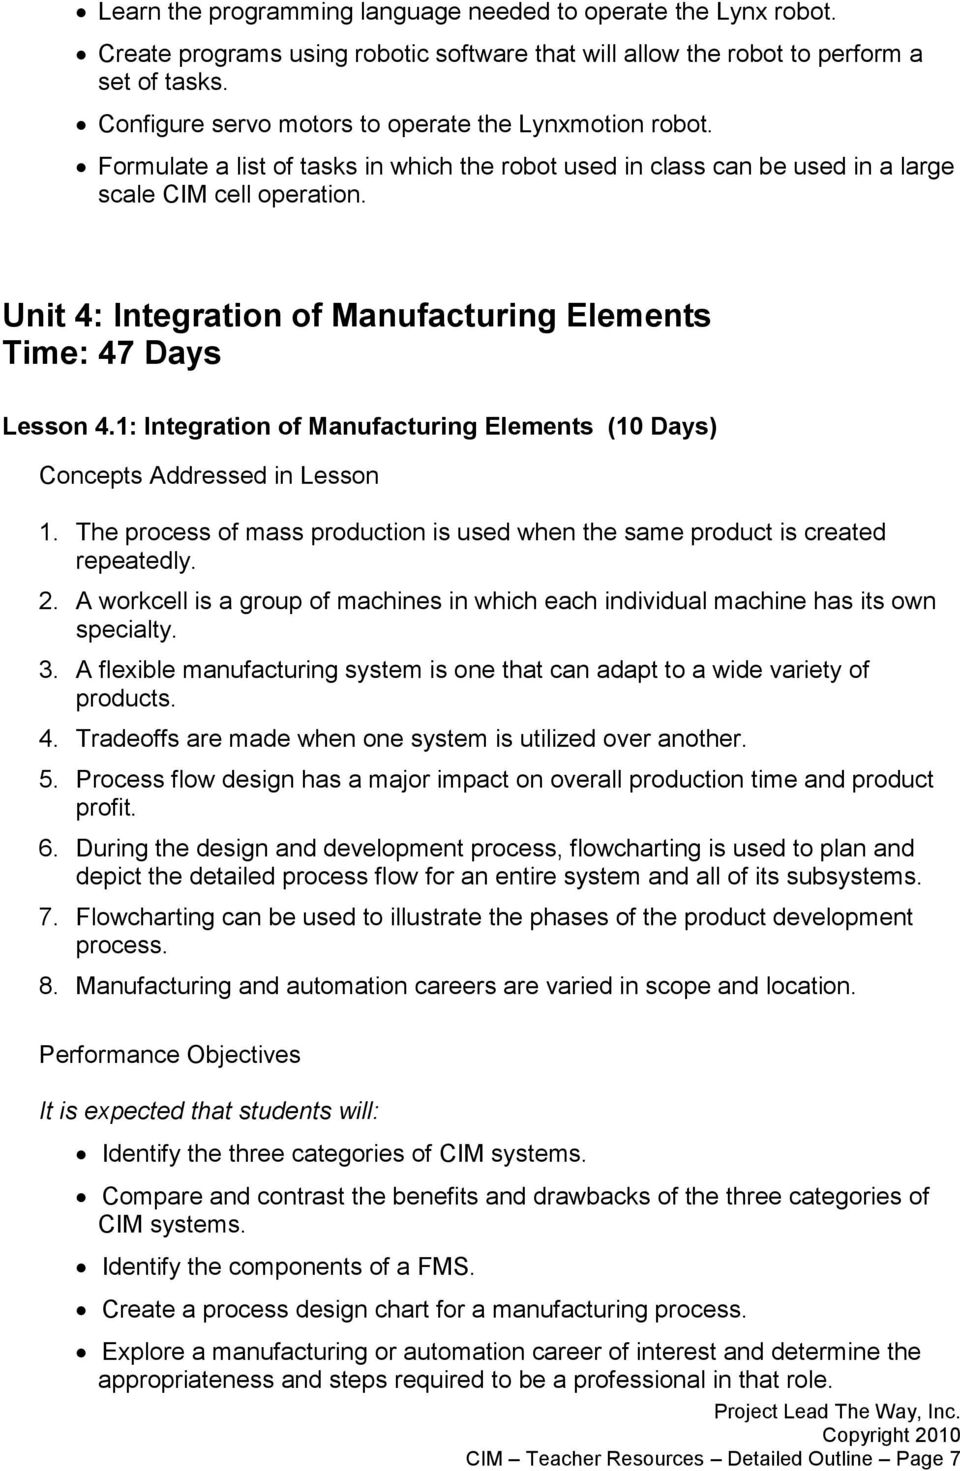 Unit 4: Integration of Manufacturing Elements Time: 47 Days Lesson 4.1: Integration of Manufacturing Elements (10 Days) 1.